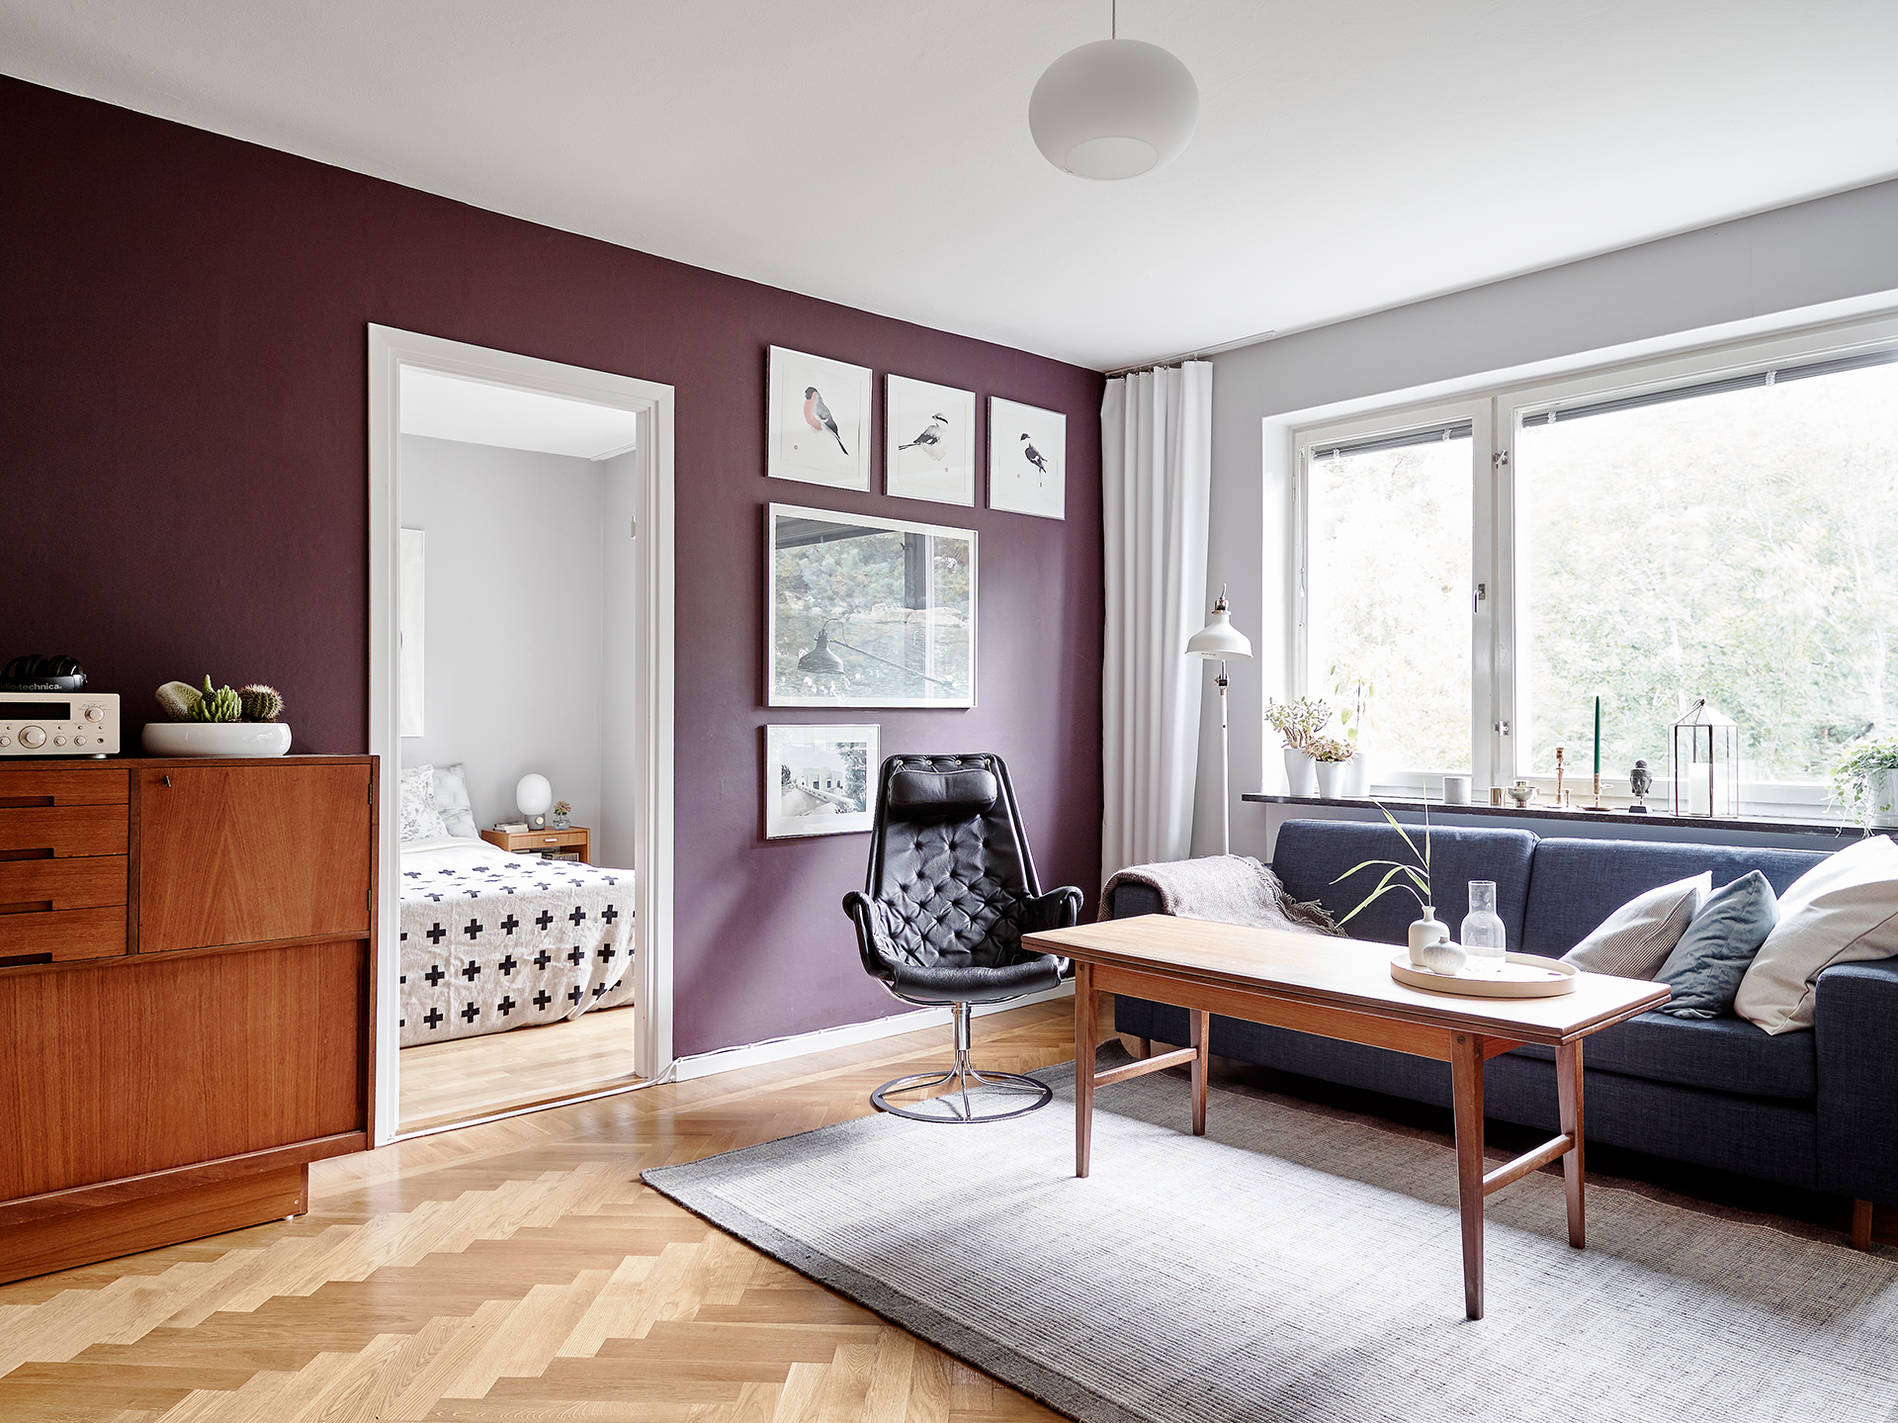 ... Burgundy Curtains For Living Room Charming Houzz.com Apartment Sweden  10 ... Part 23